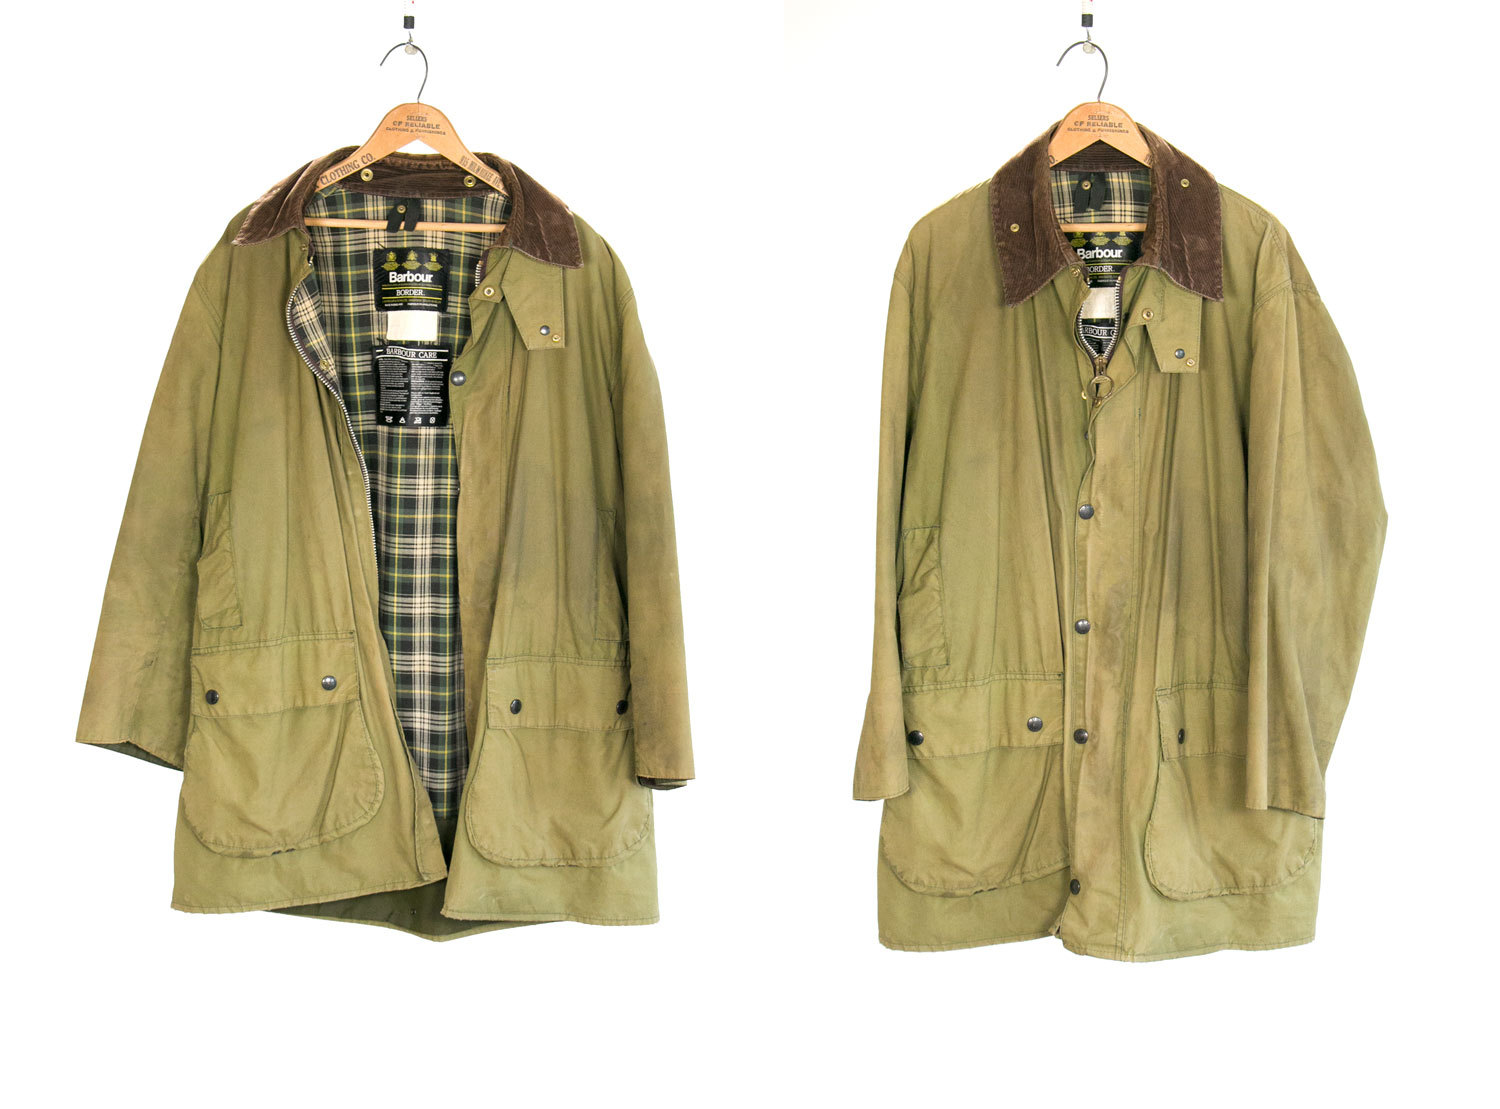 Vintage Barbour A200 BORDER Waxed Cotton Canvas JACKET C447 / 112CM // Green / Olive // Made in England // Outdoors // Hunting